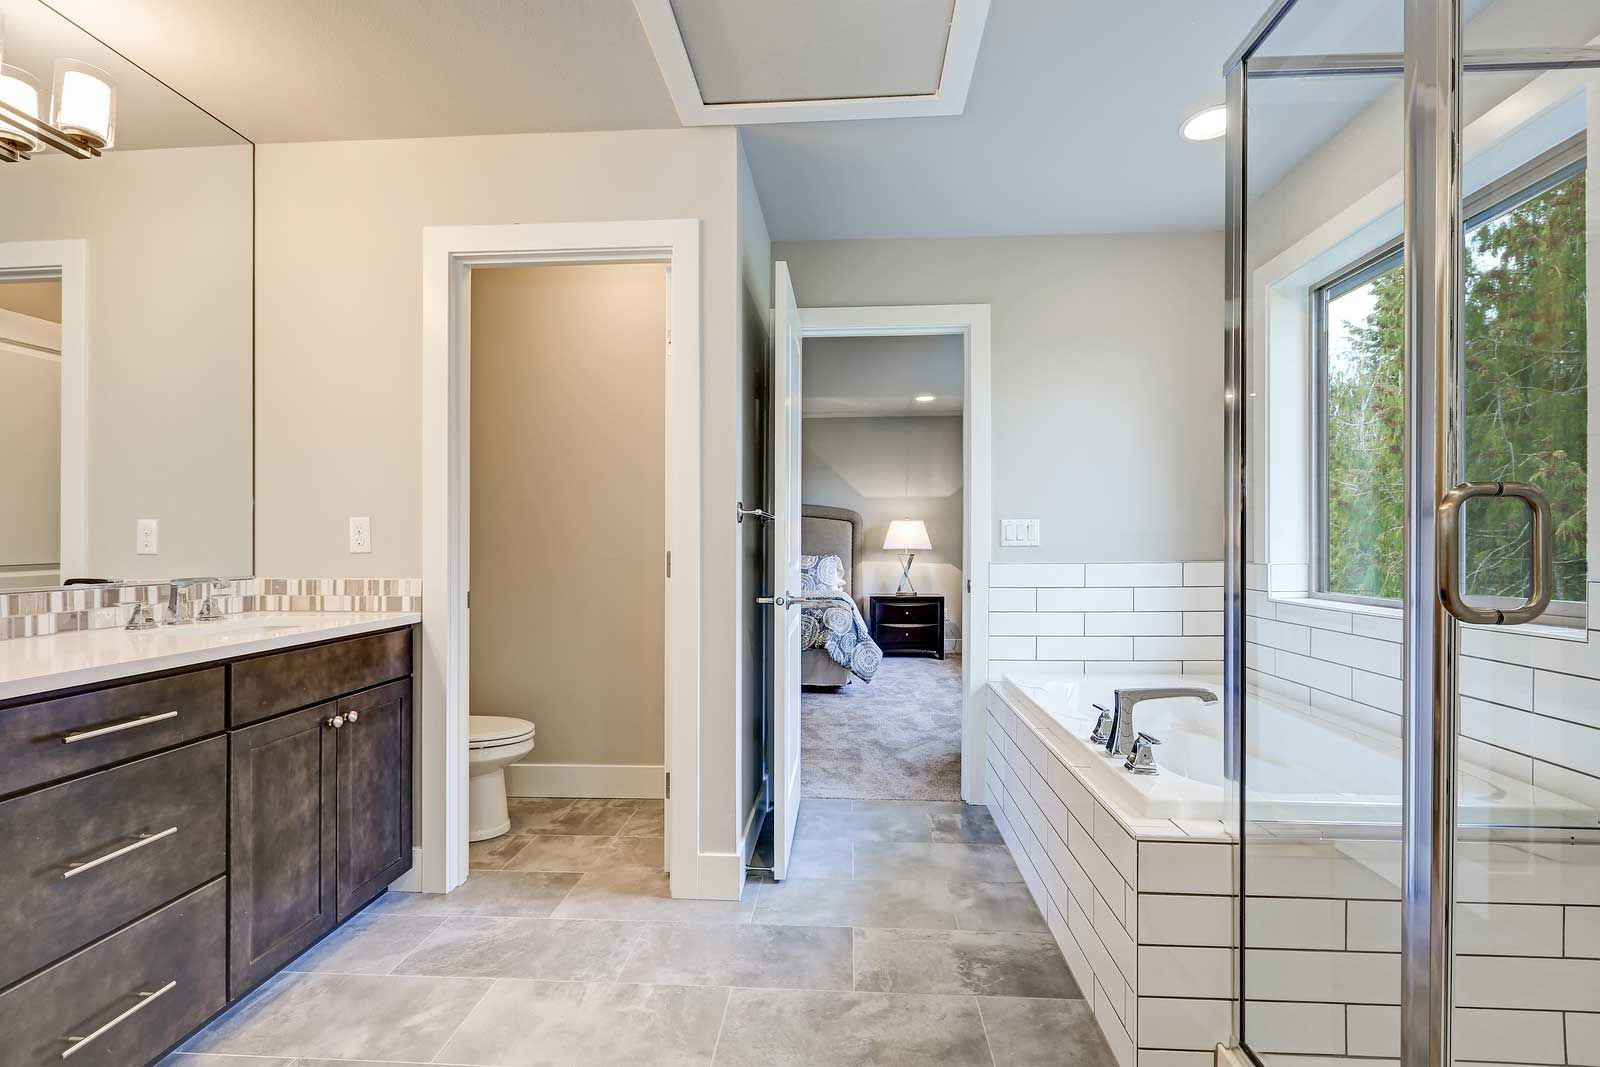 Ready For A New Look In Your Bathroom Entrust Your Bathroom Remodel In Kansas City To Our Full Bathroom Remodel Bathroom Remodel Cost Bathroom Renovation Cost [ 1067 x 1600 Pixel ]